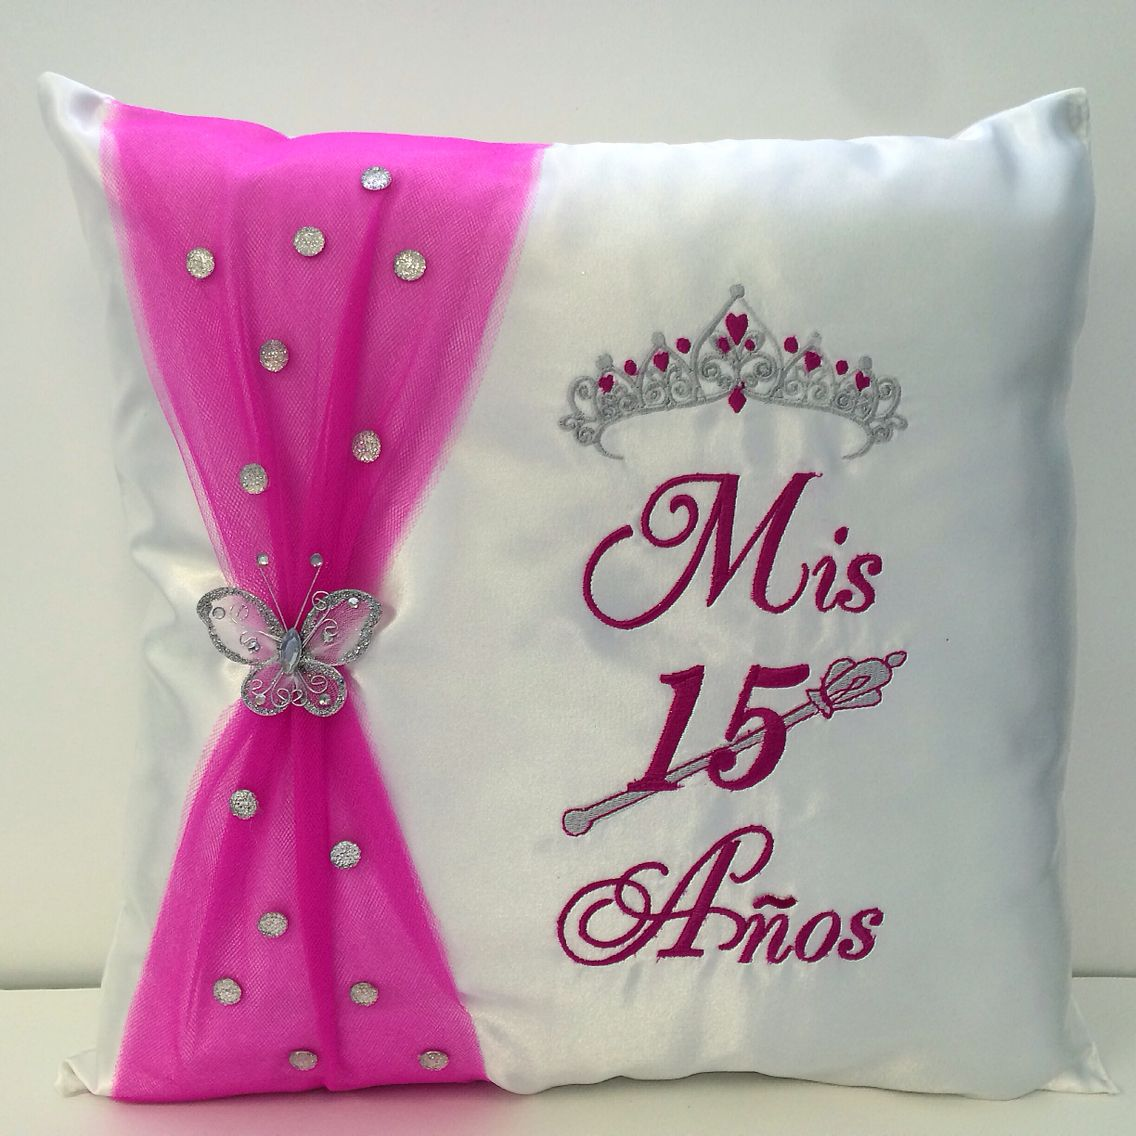 Quinceanera pillow | Quinceanera dress & party ideas ...